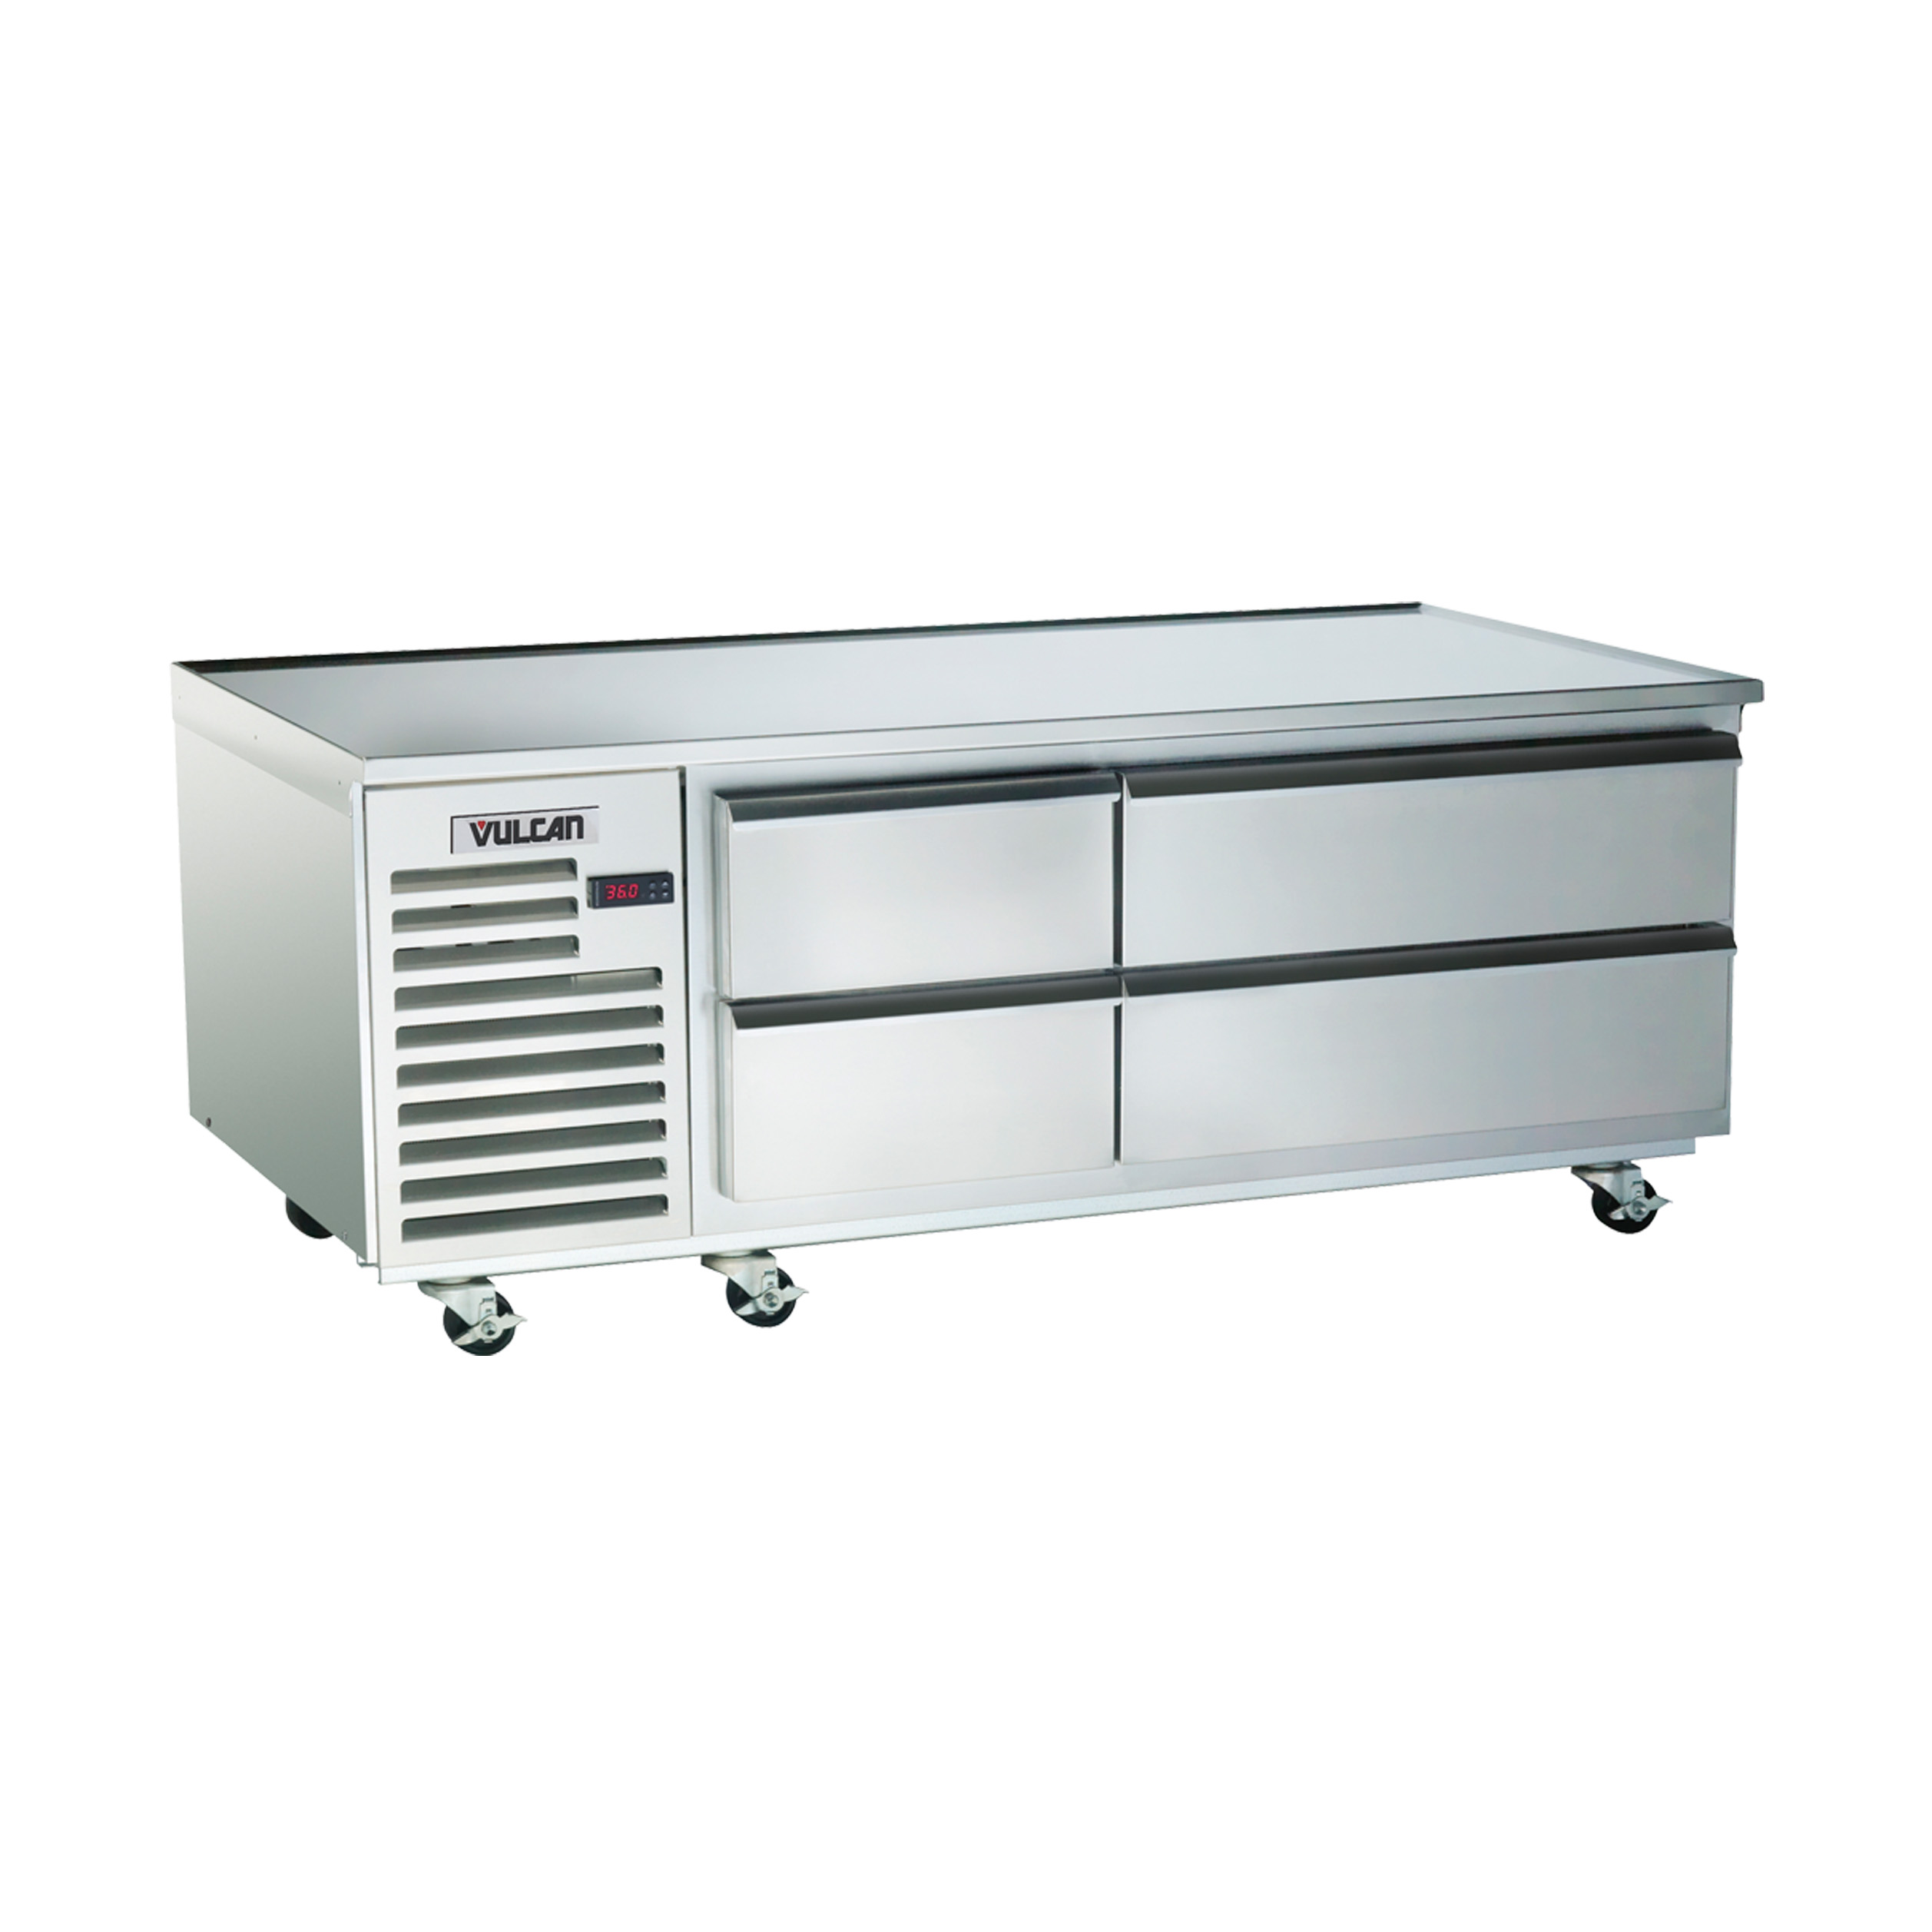 Vulcan ARS84 equipment stand, refrigerated base